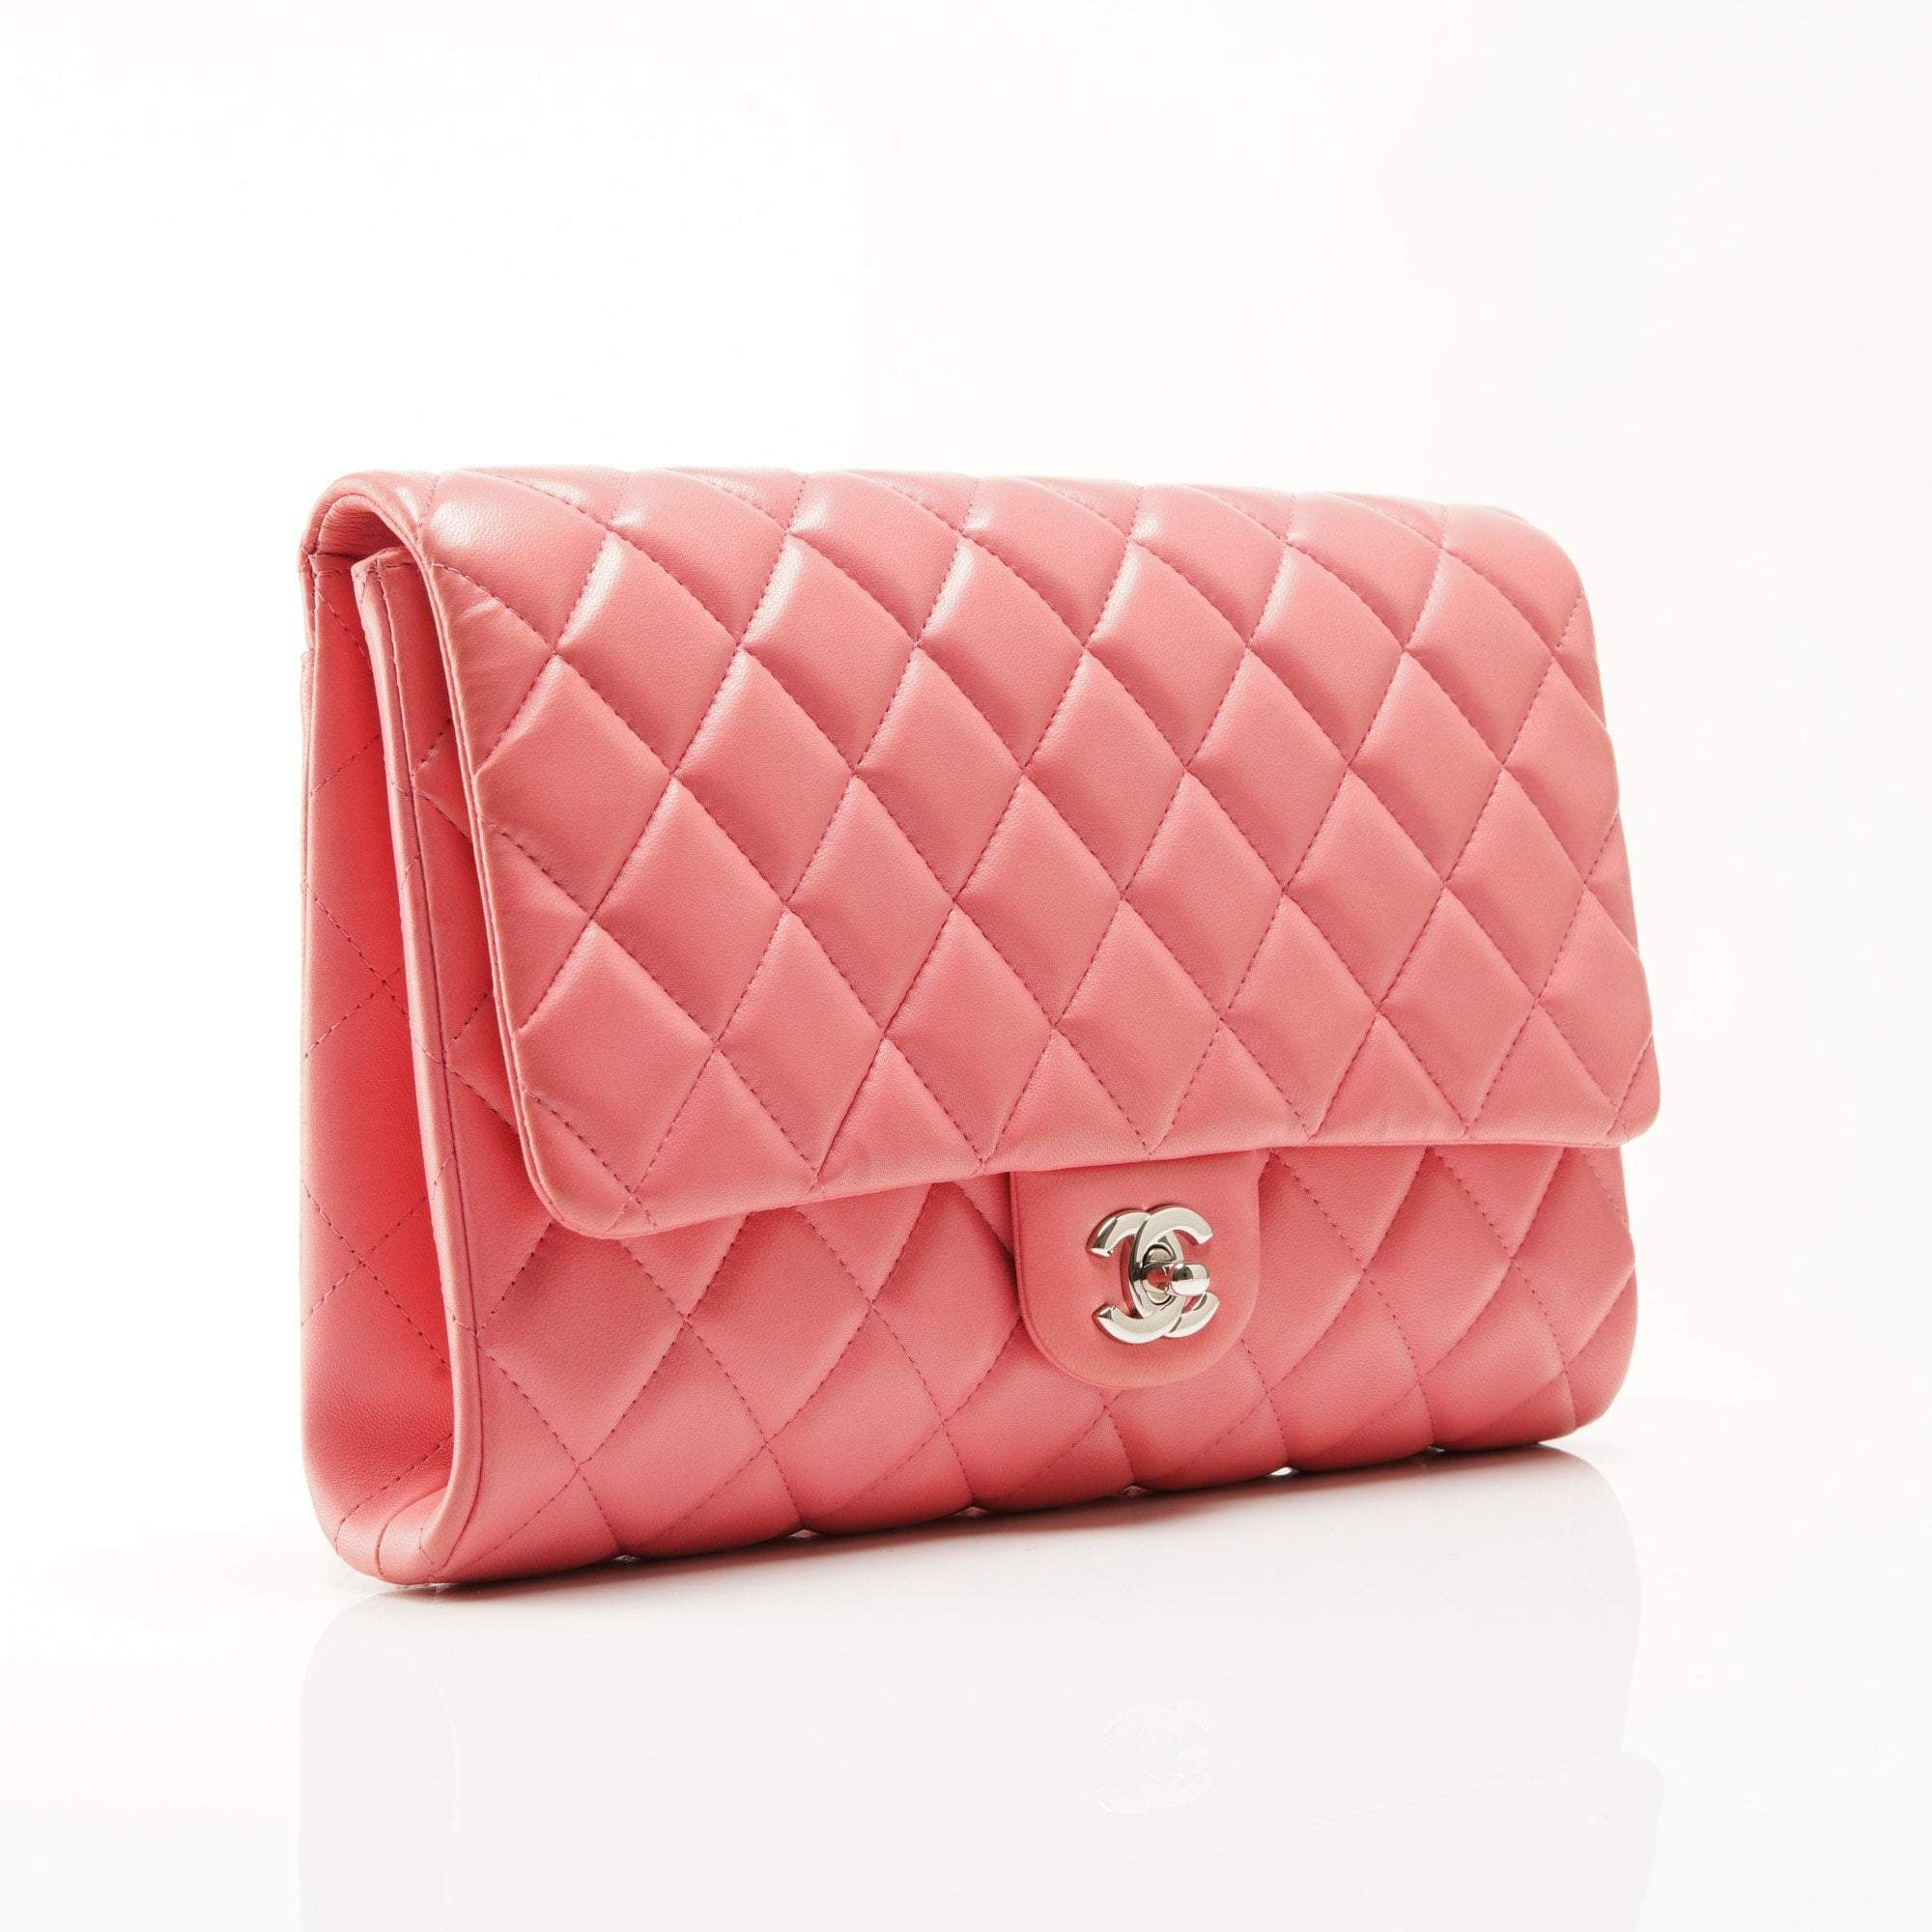 Chanel Light Pink Quilted Flap Bag